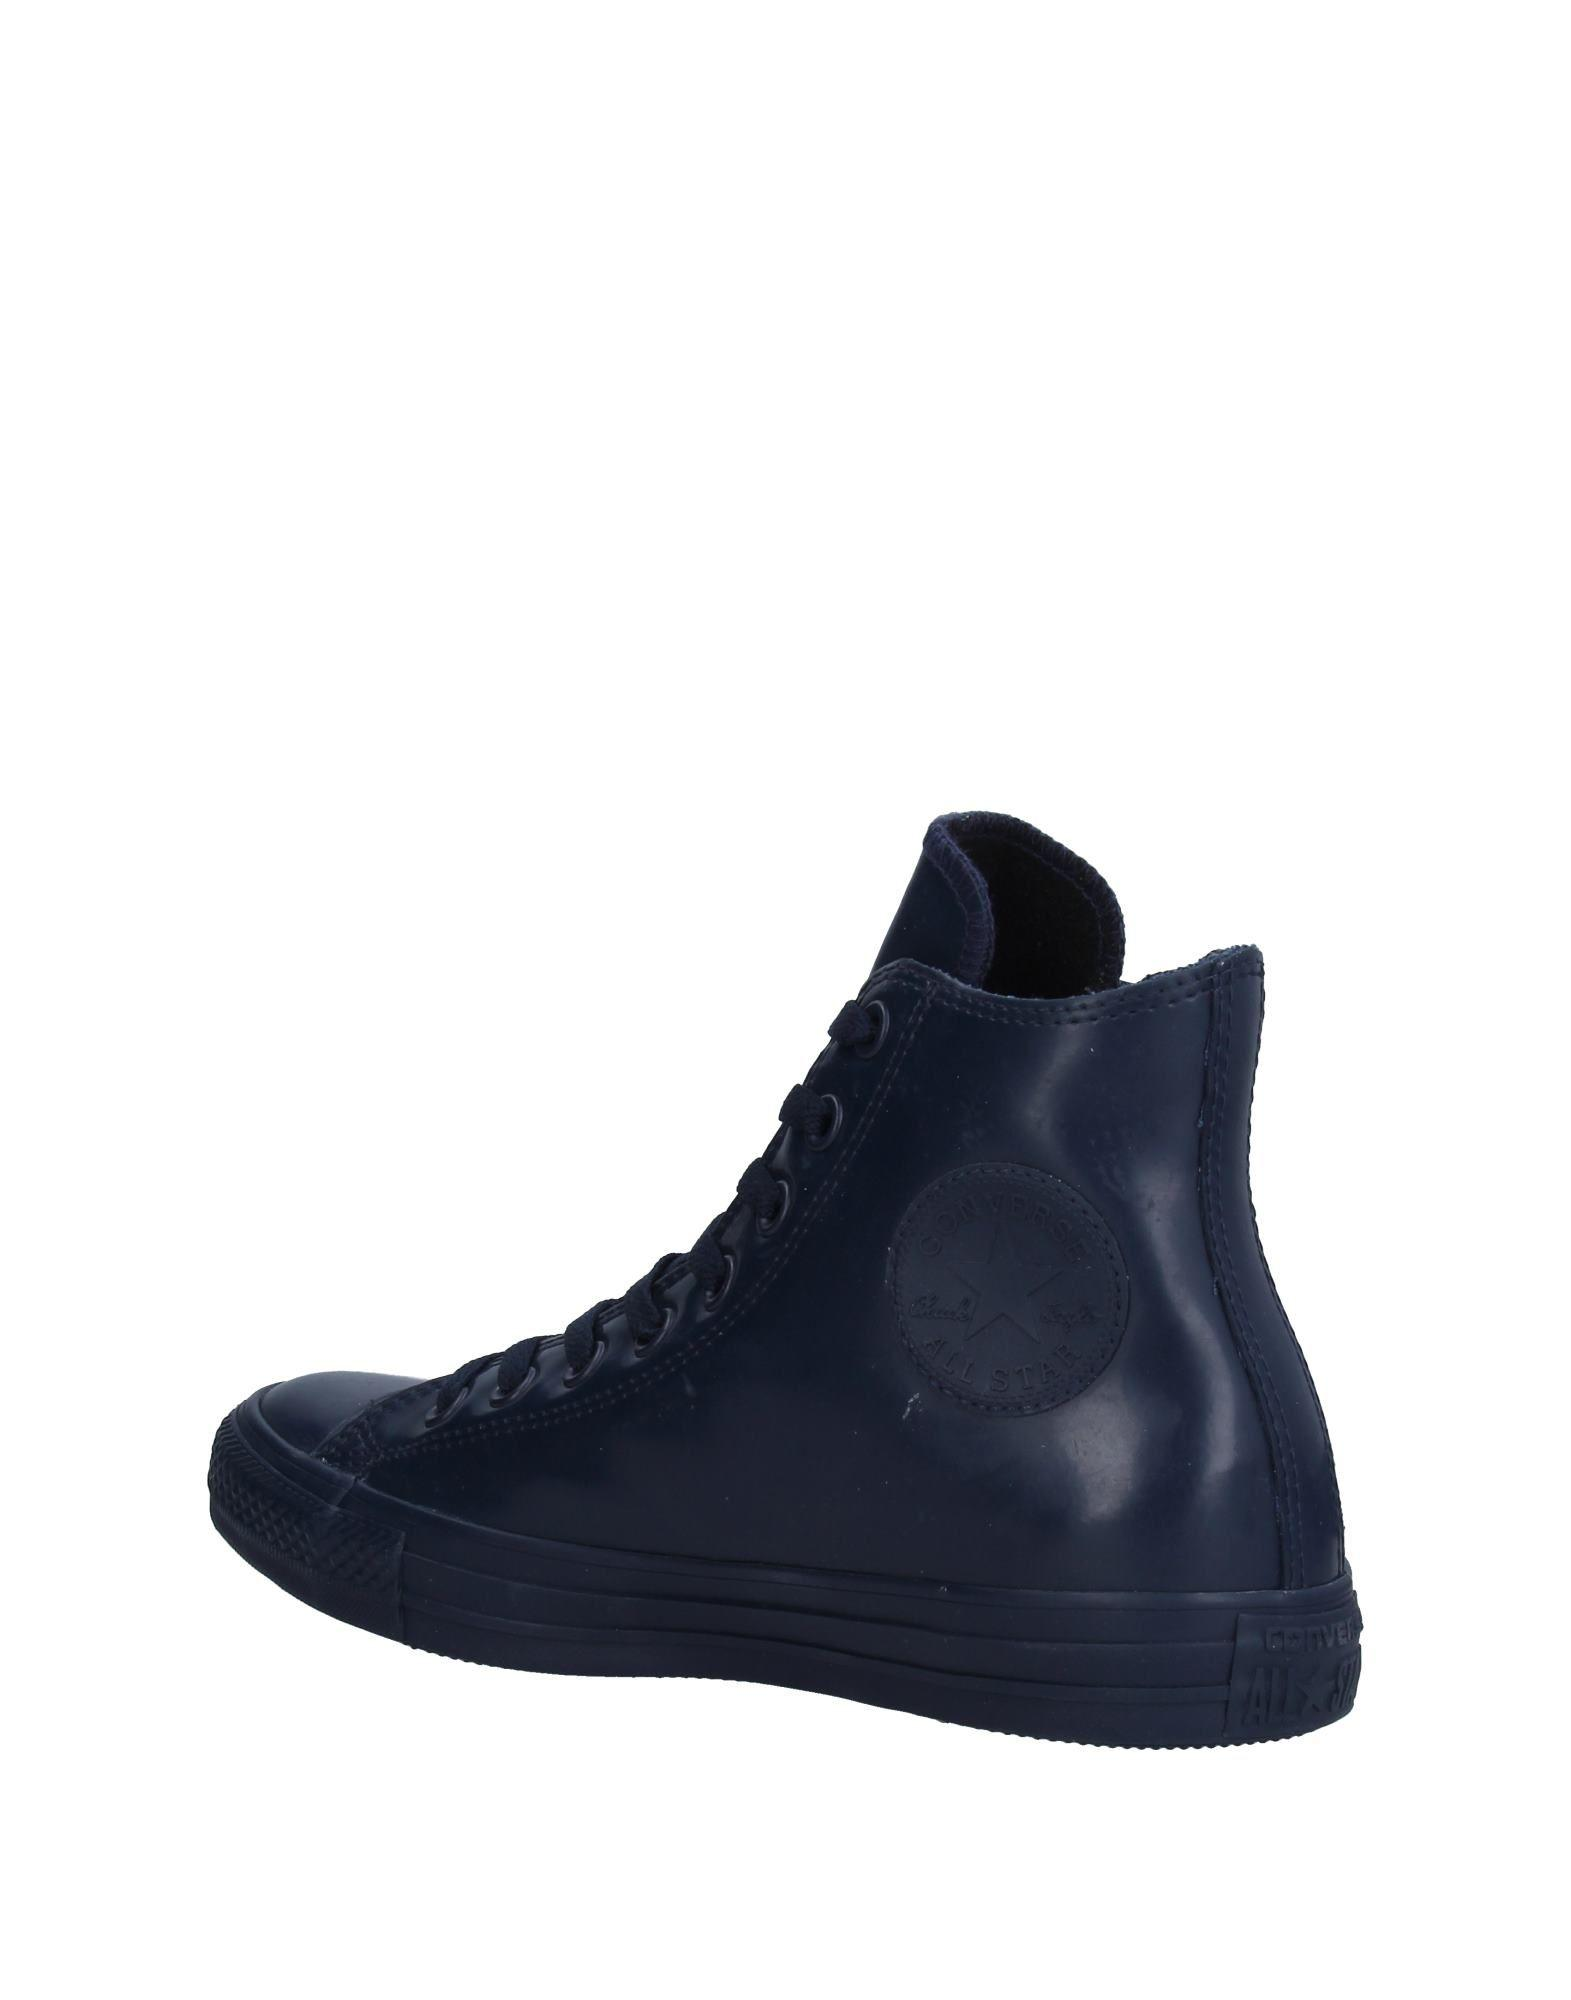 Converse Rubber High-tops & Sneakers in Dark Blue (Blue)